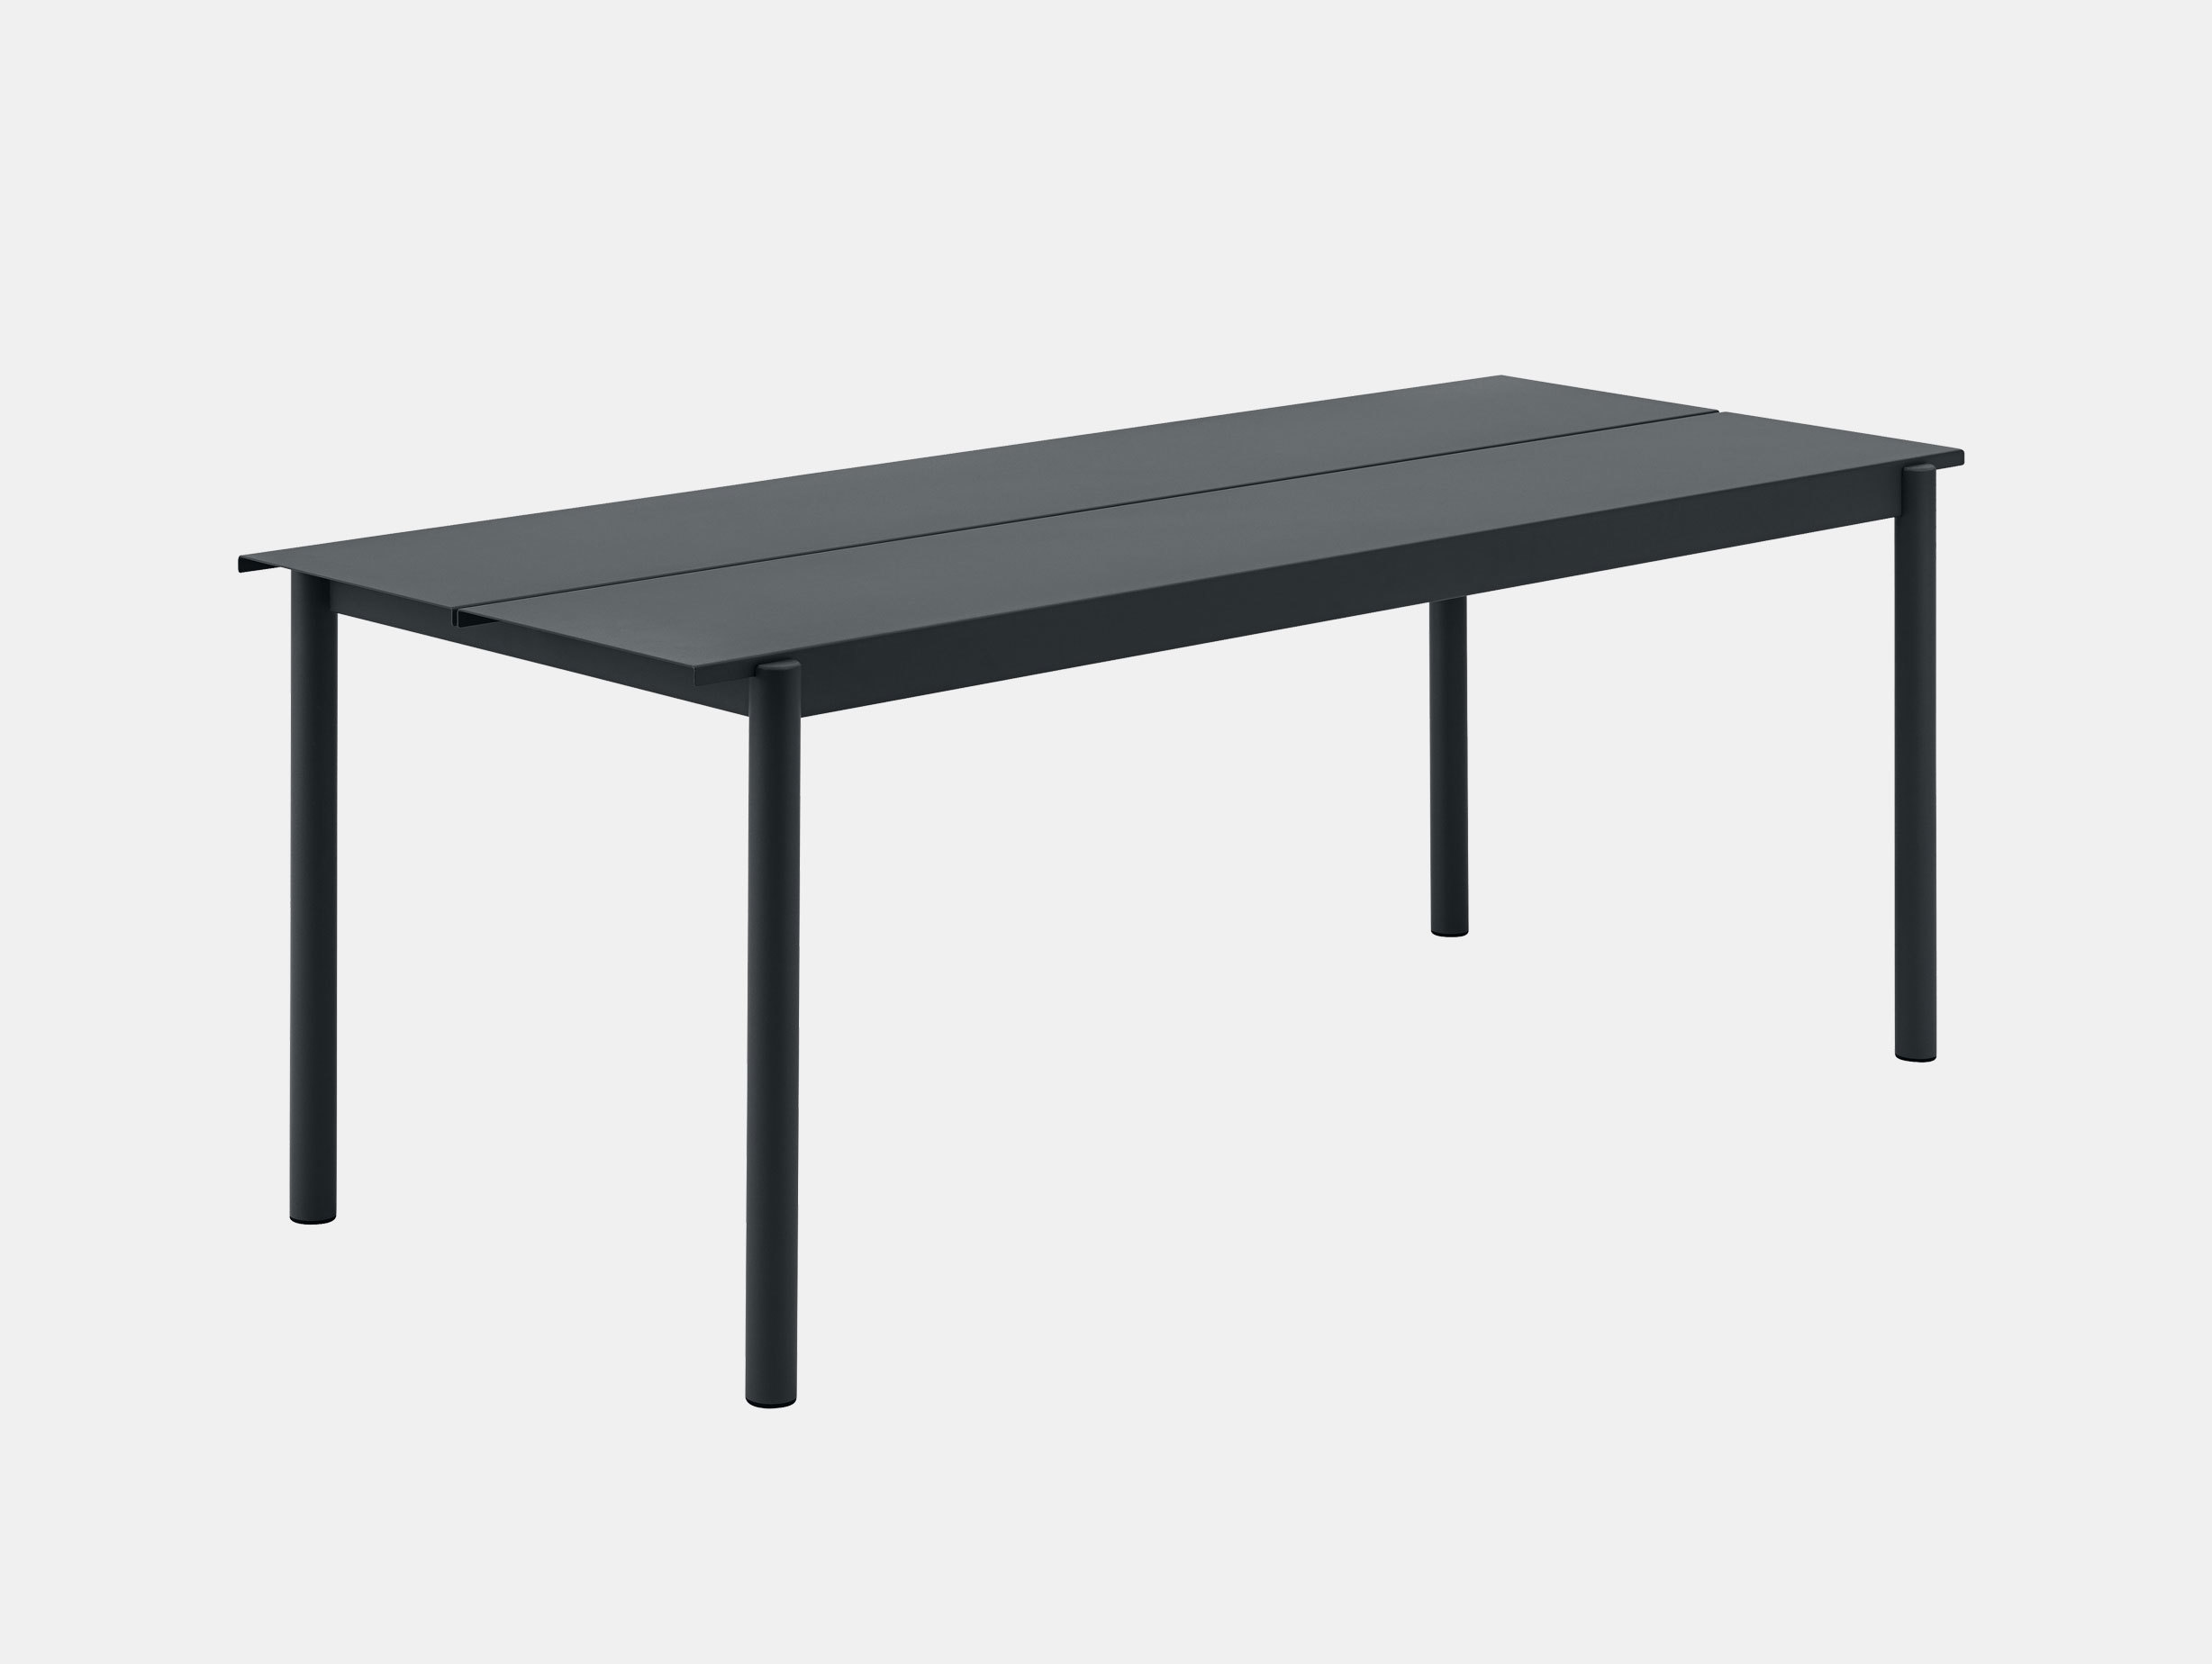 Muuto Linear Steel Outdoor Table L 200Cm Black Thomas Bentzen